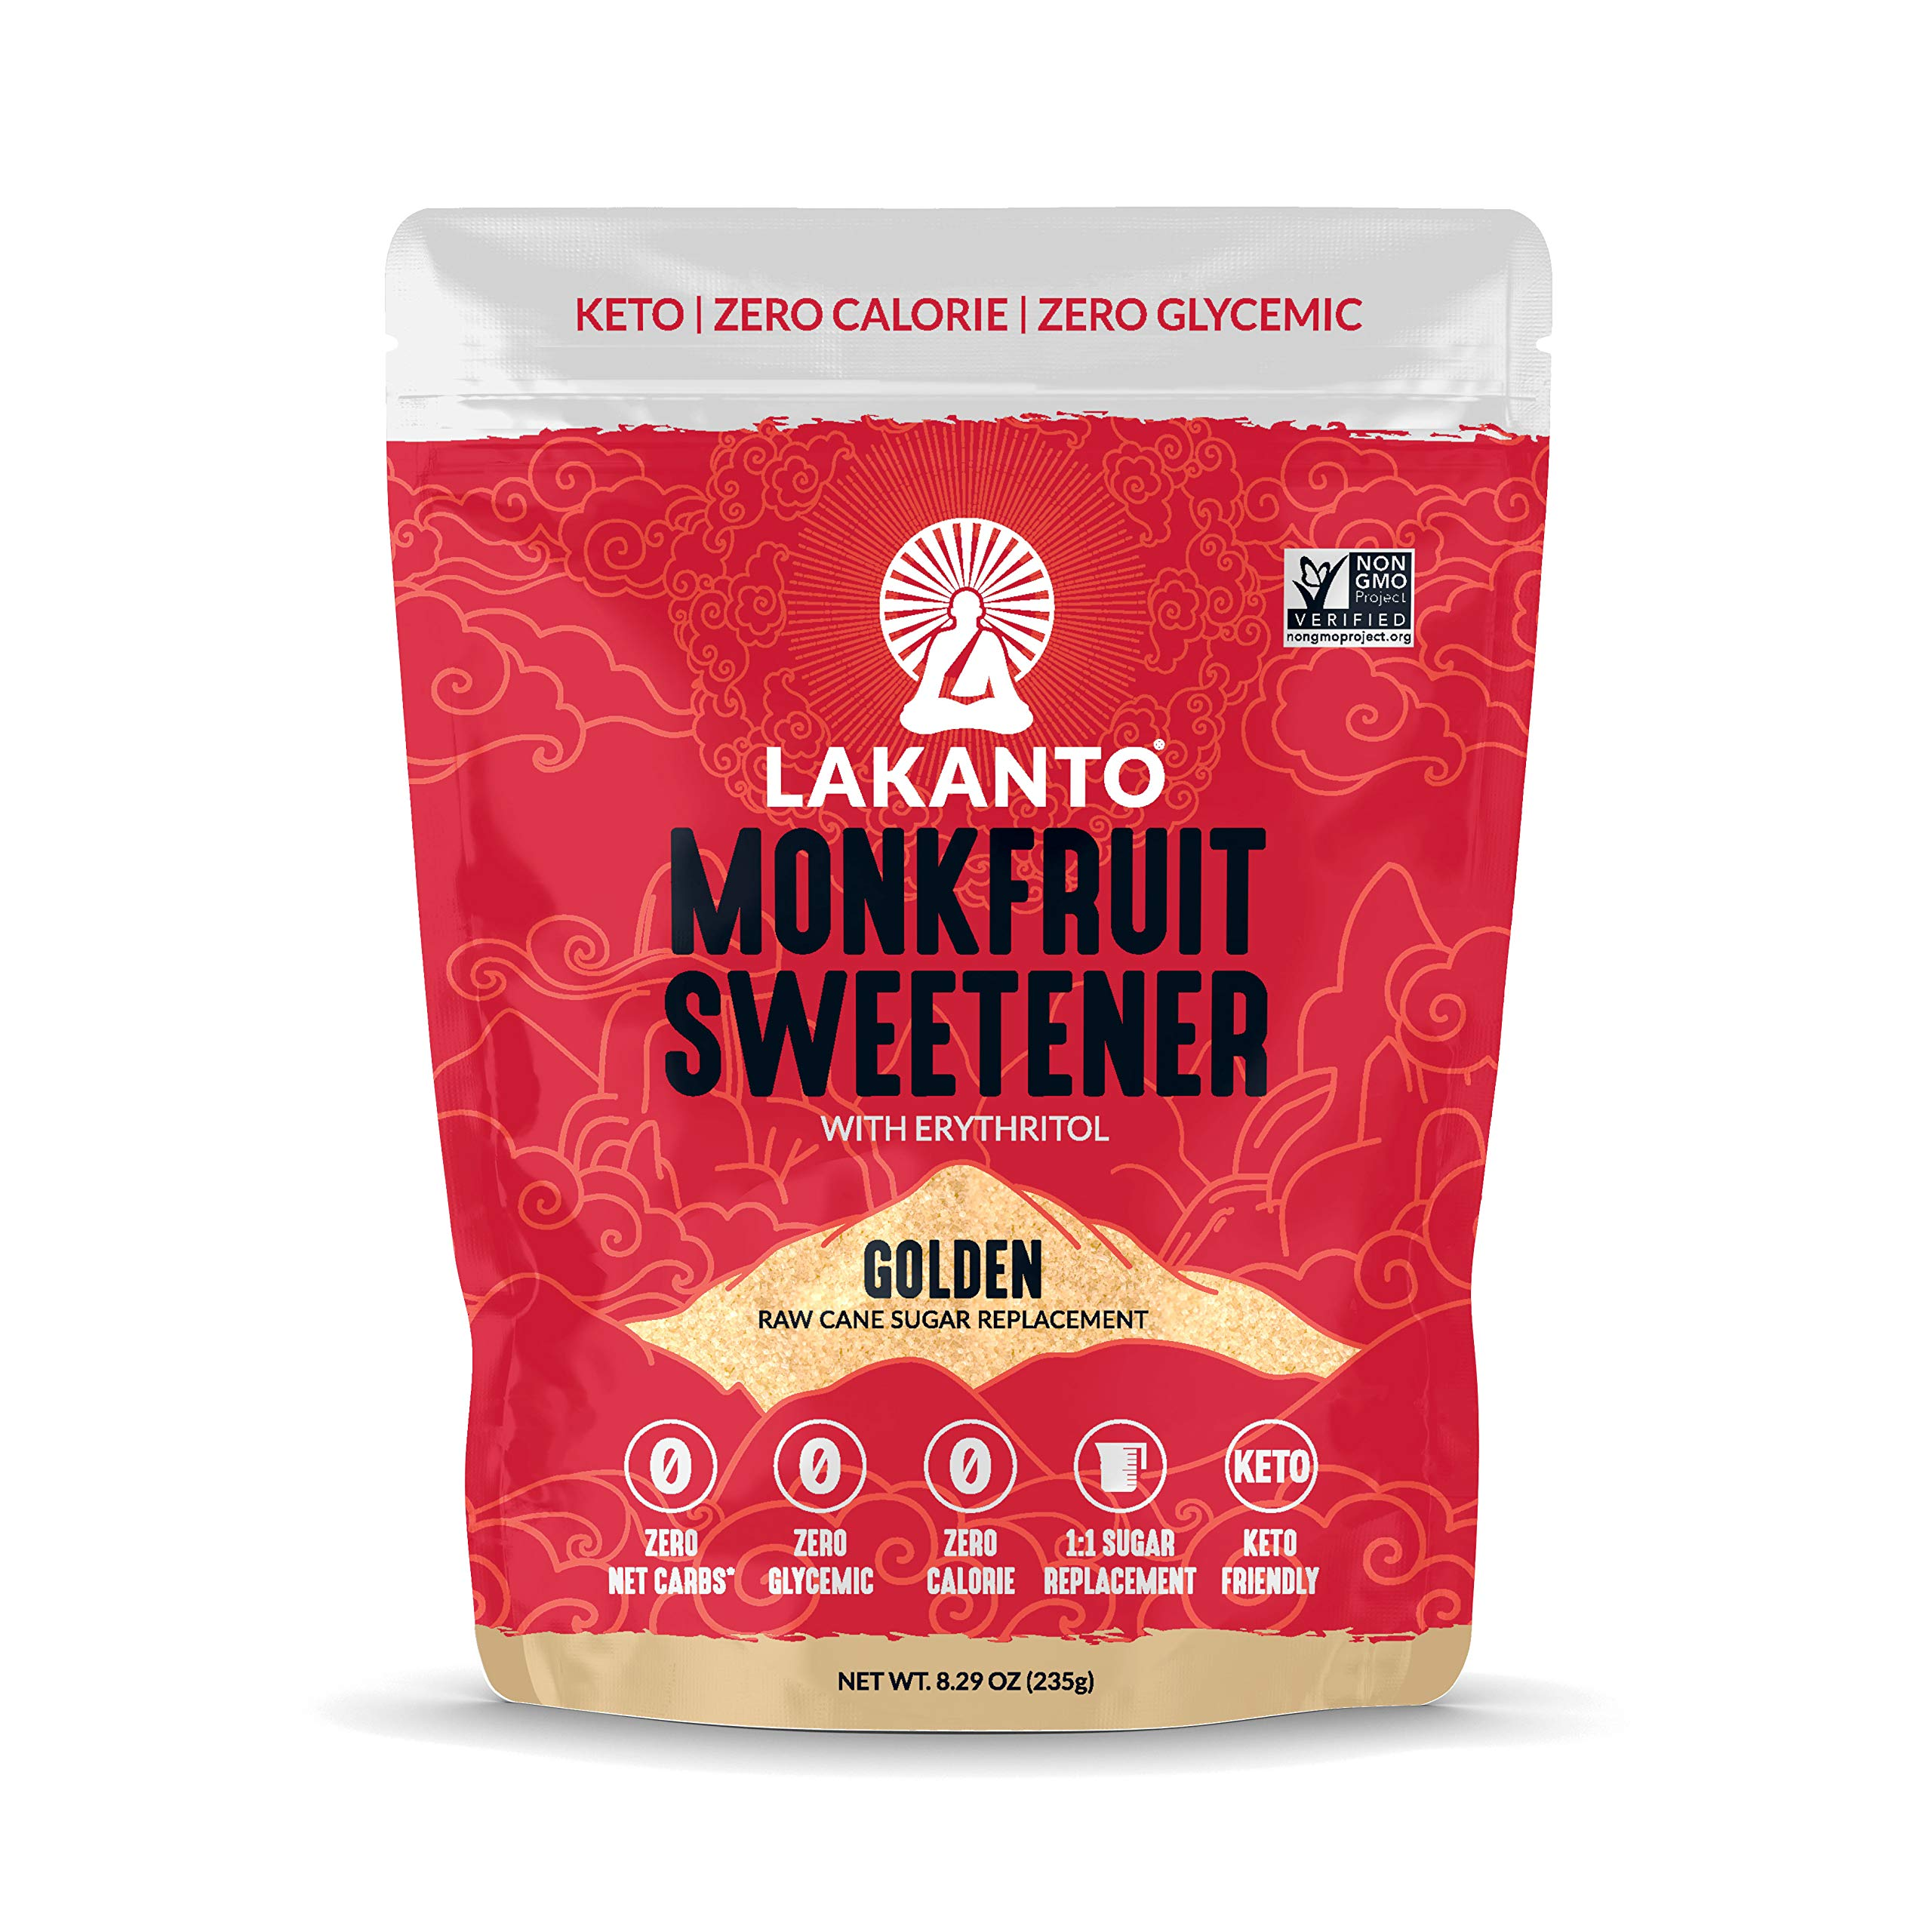 Lakanto Monkfruit Sweetener - 1:1 Raw Cane Sugar Substitute, Zero Calorie, Keto Diet Friendly, Zero Net Carbs, Zero Glycemic, Baking, Extract, Sugar Replacement (Golden - 8.29 ounces)